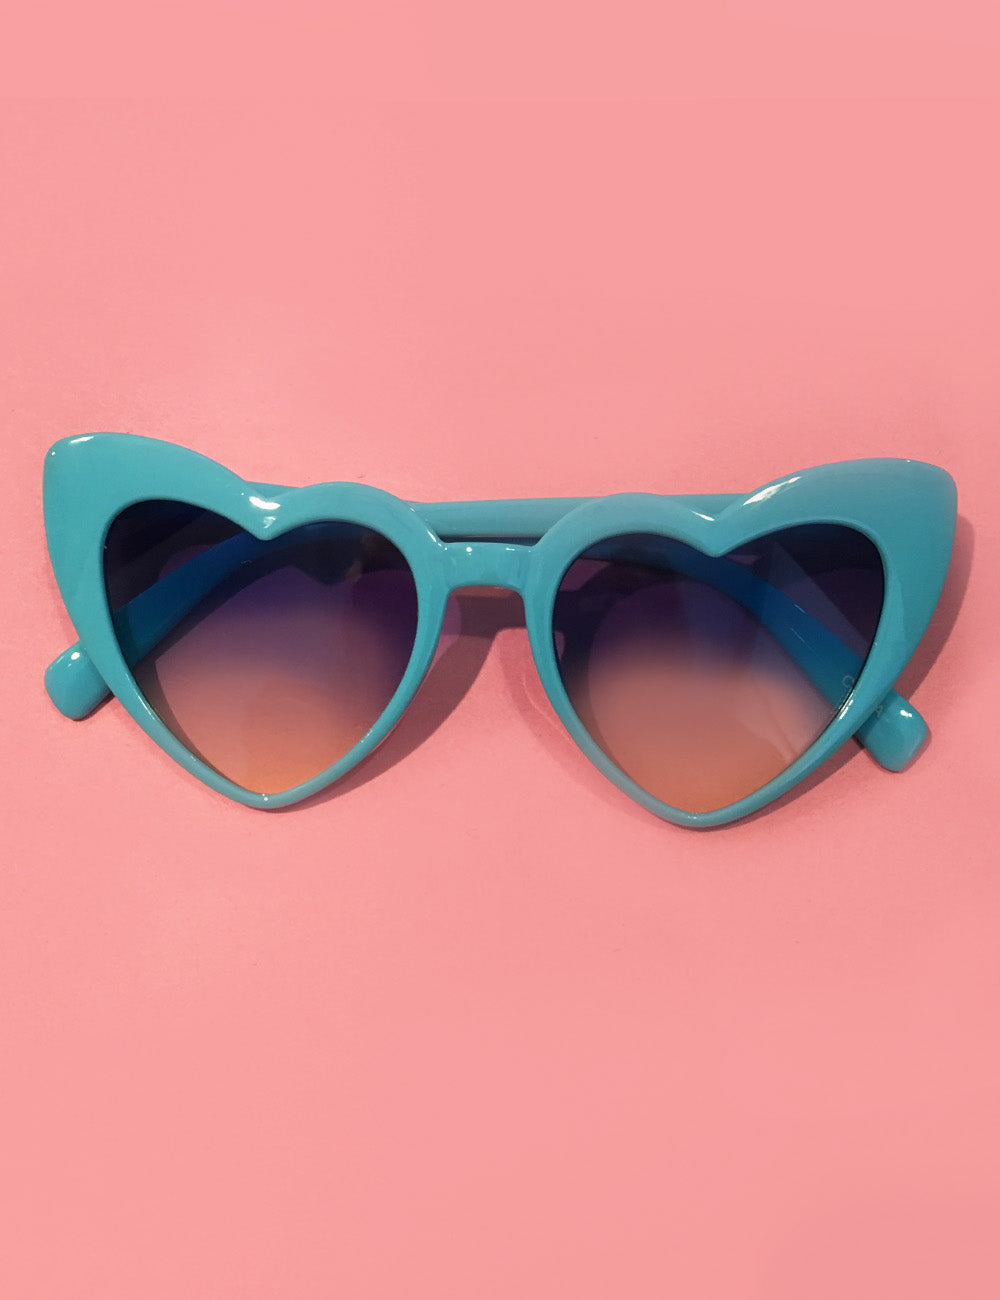 Turquoise Blue Heart Shaped Retro Sunglasses